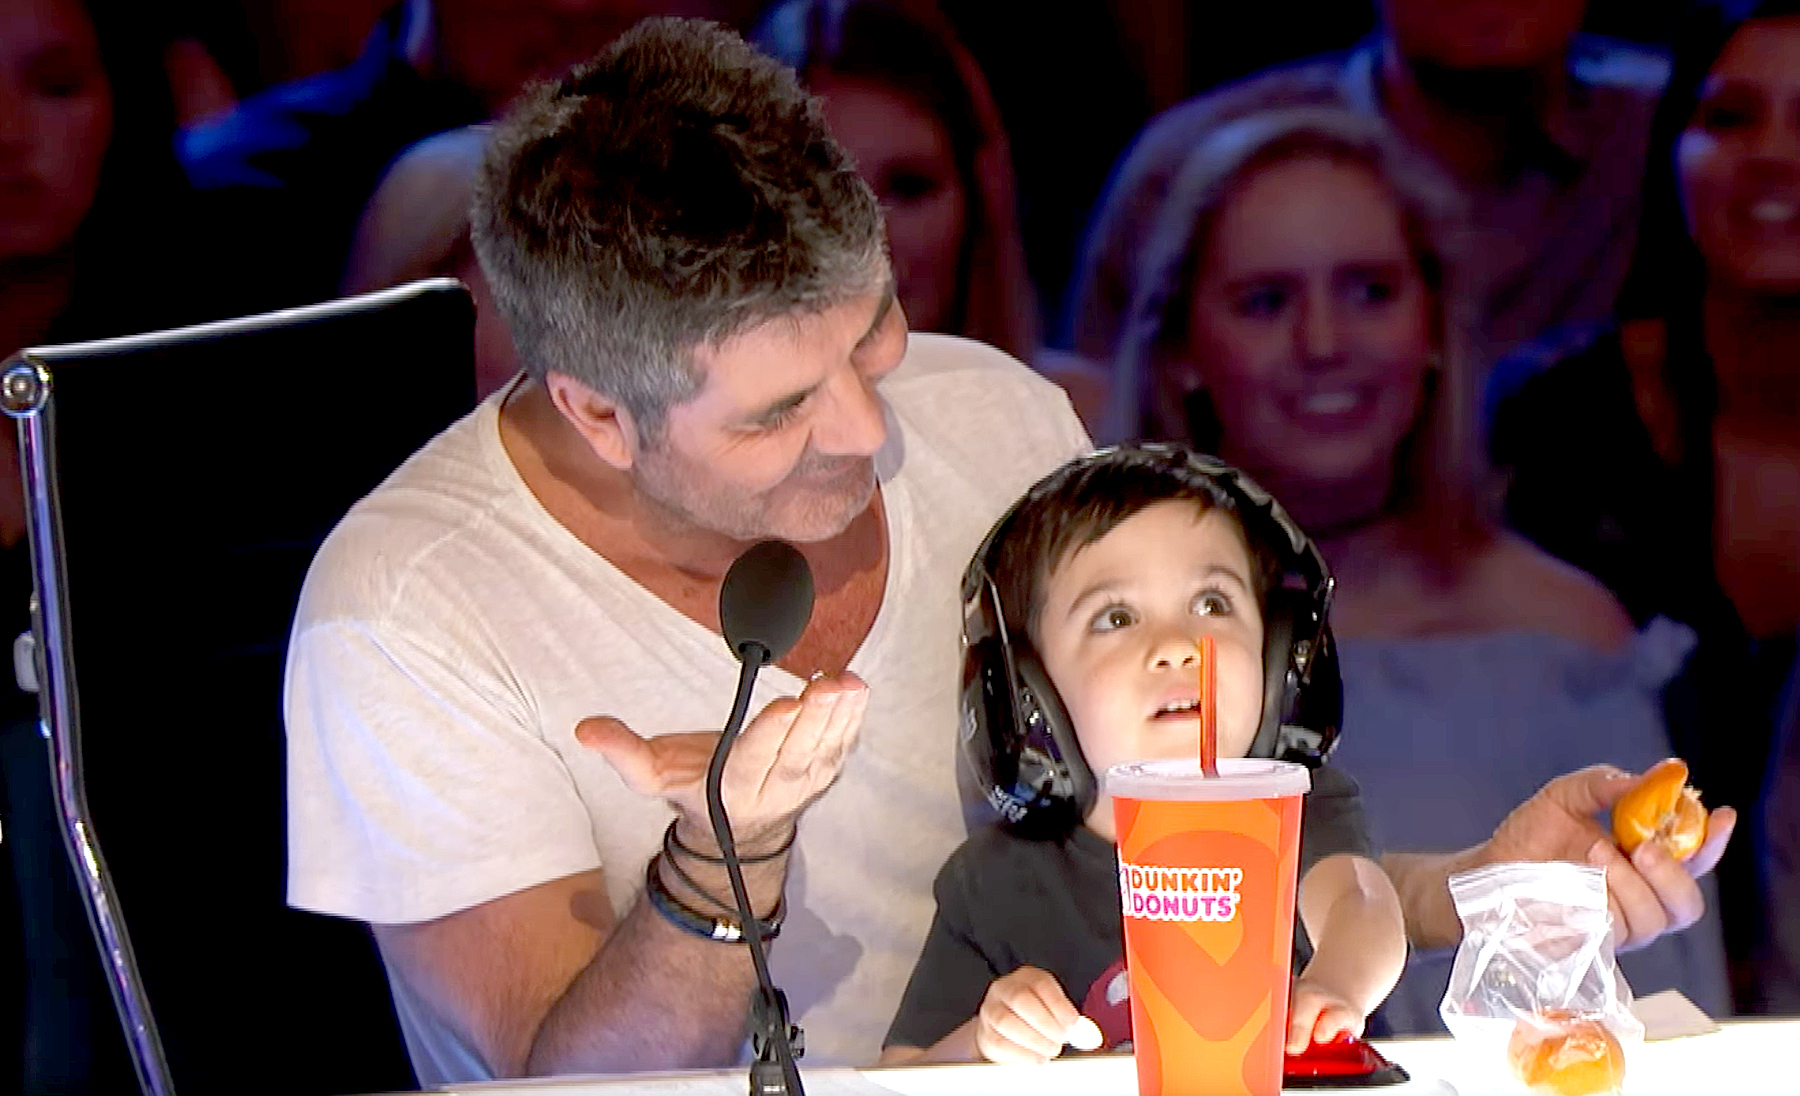 Eric Cowell sitting on the lap of his father Simon Cowell wearing a headset